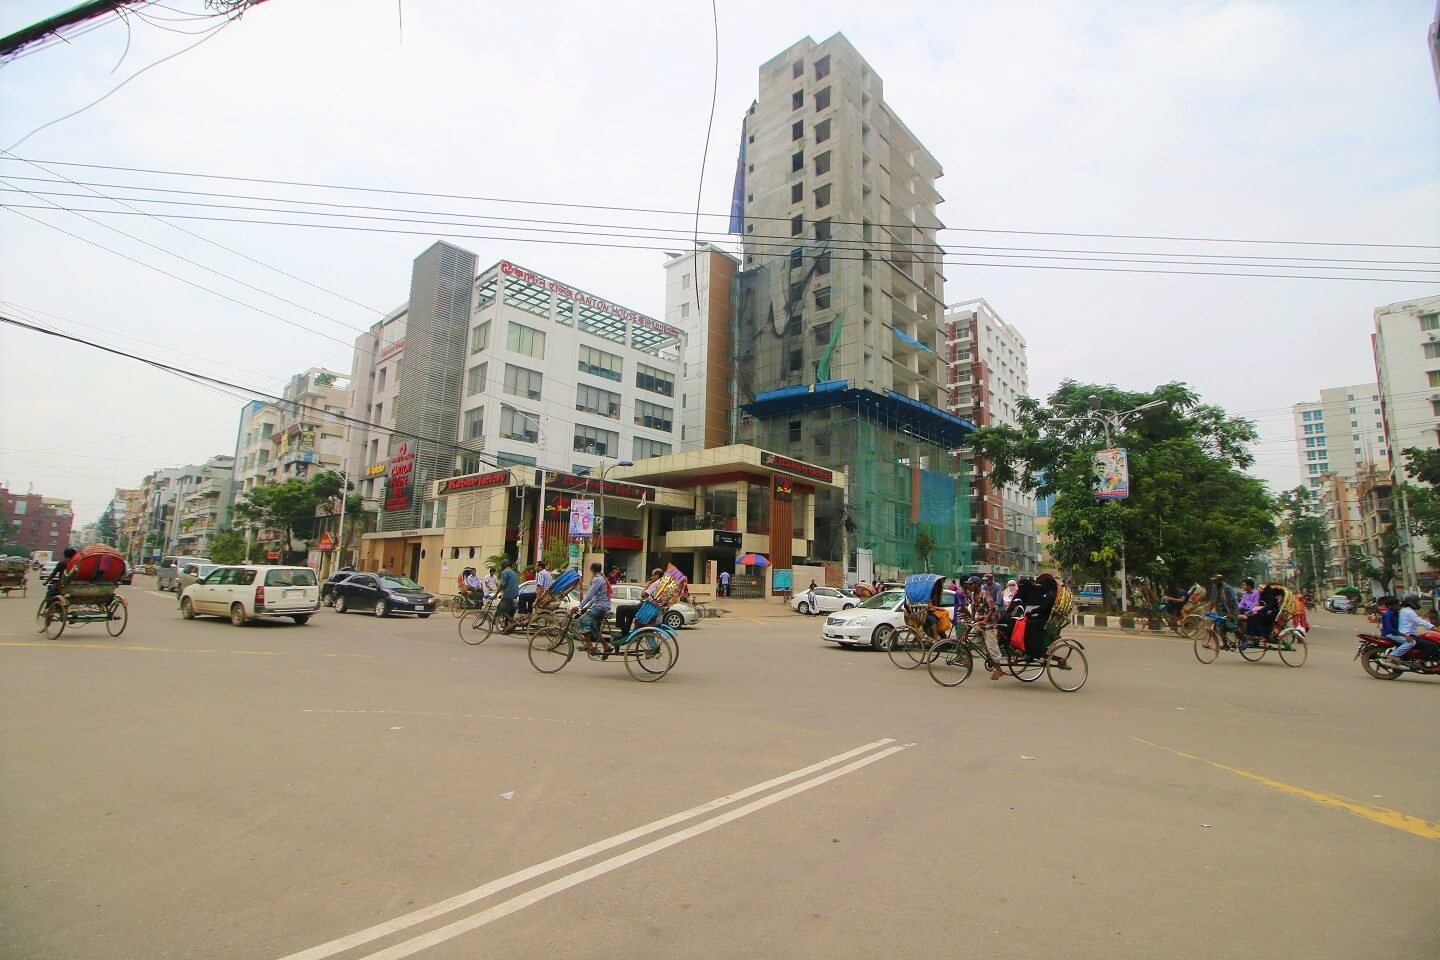 Streetside addas, especially in the evening is one of the popular places to visit in Uttara